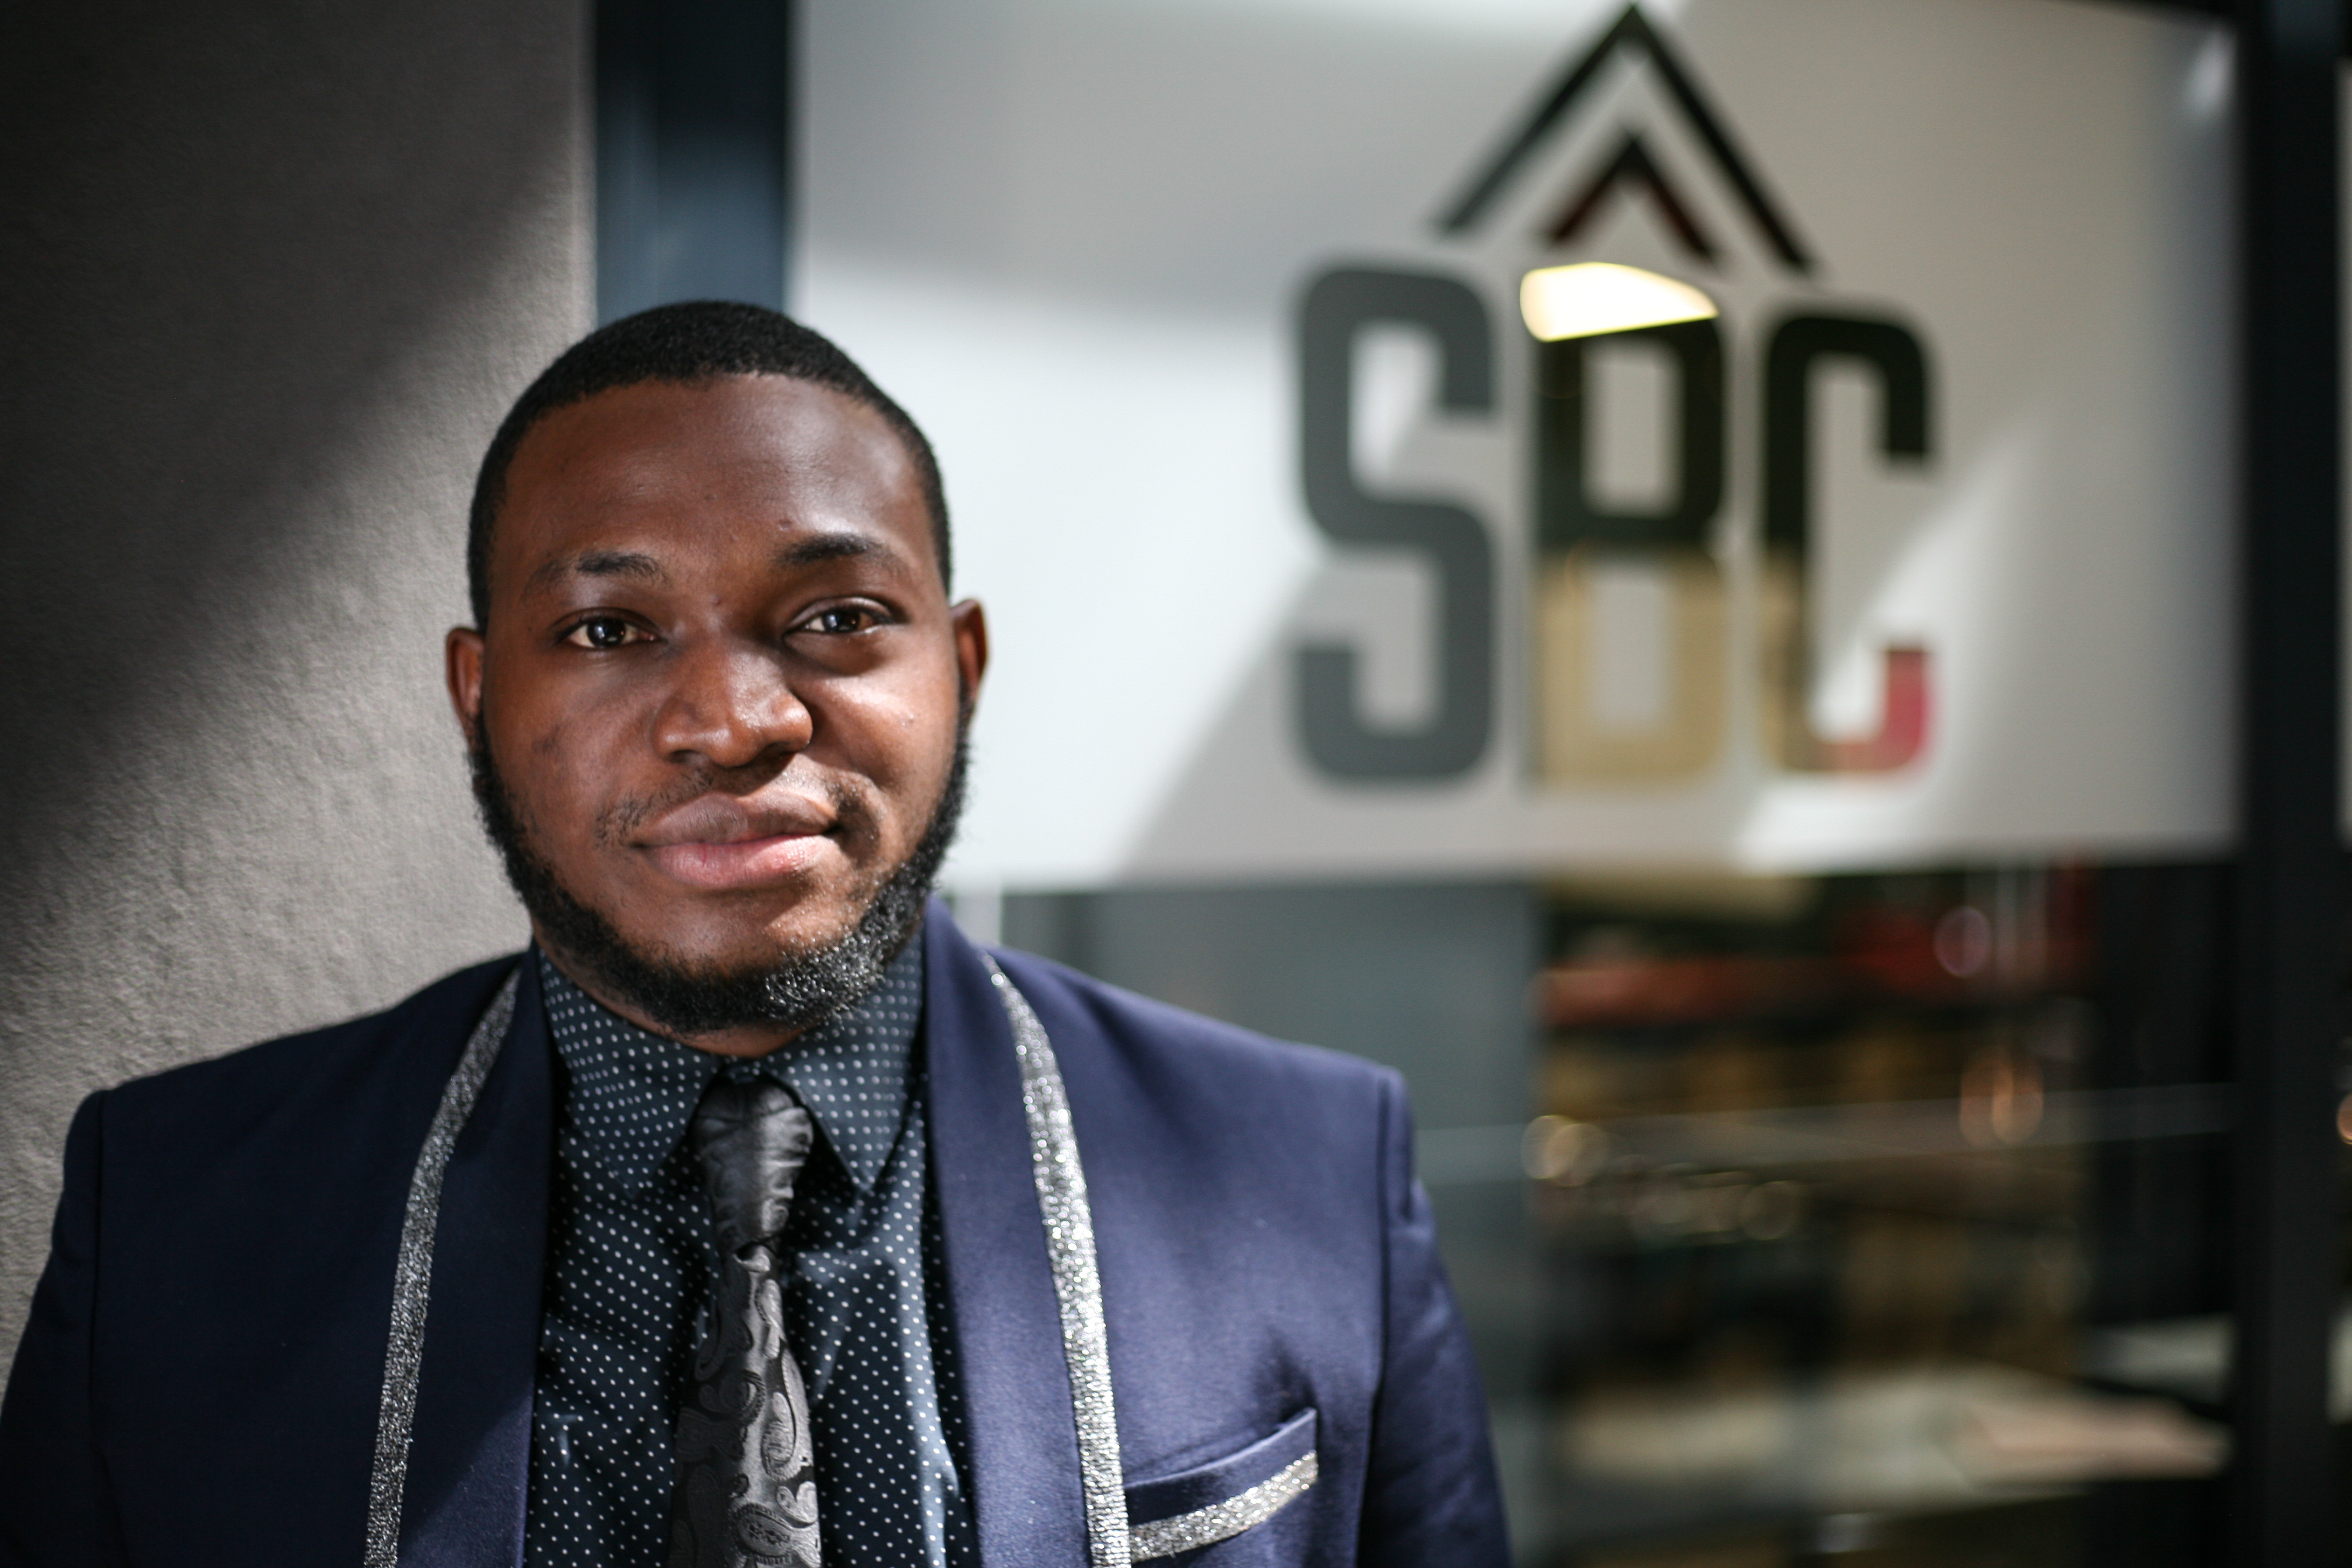 Dr. Charles Immanuel Akhimien is the co founder of MOBicure pictured here at the Startupbootcamp Cape Town office